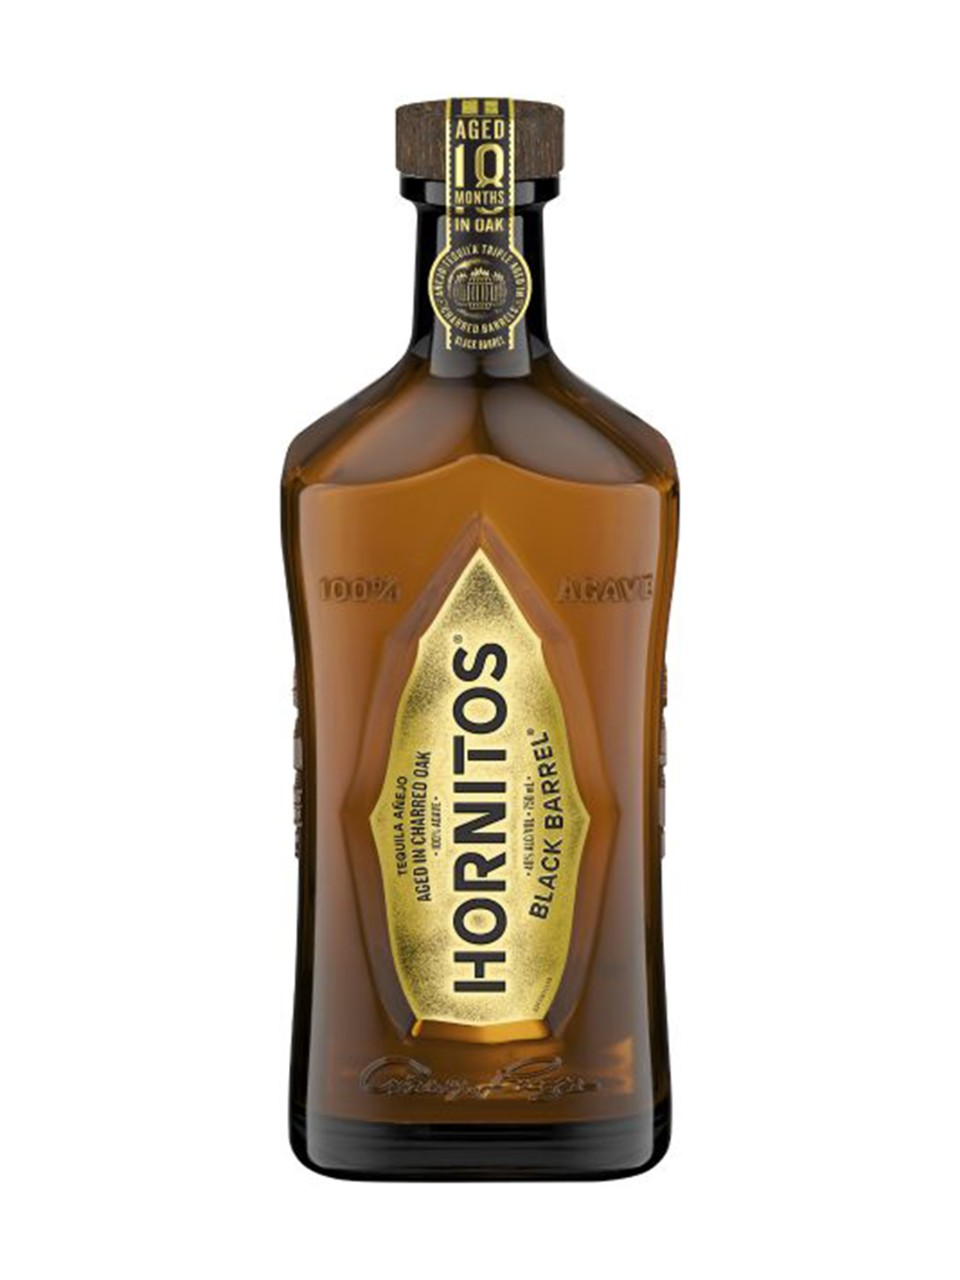 Tequila Sauza Hornitos Black Barrel